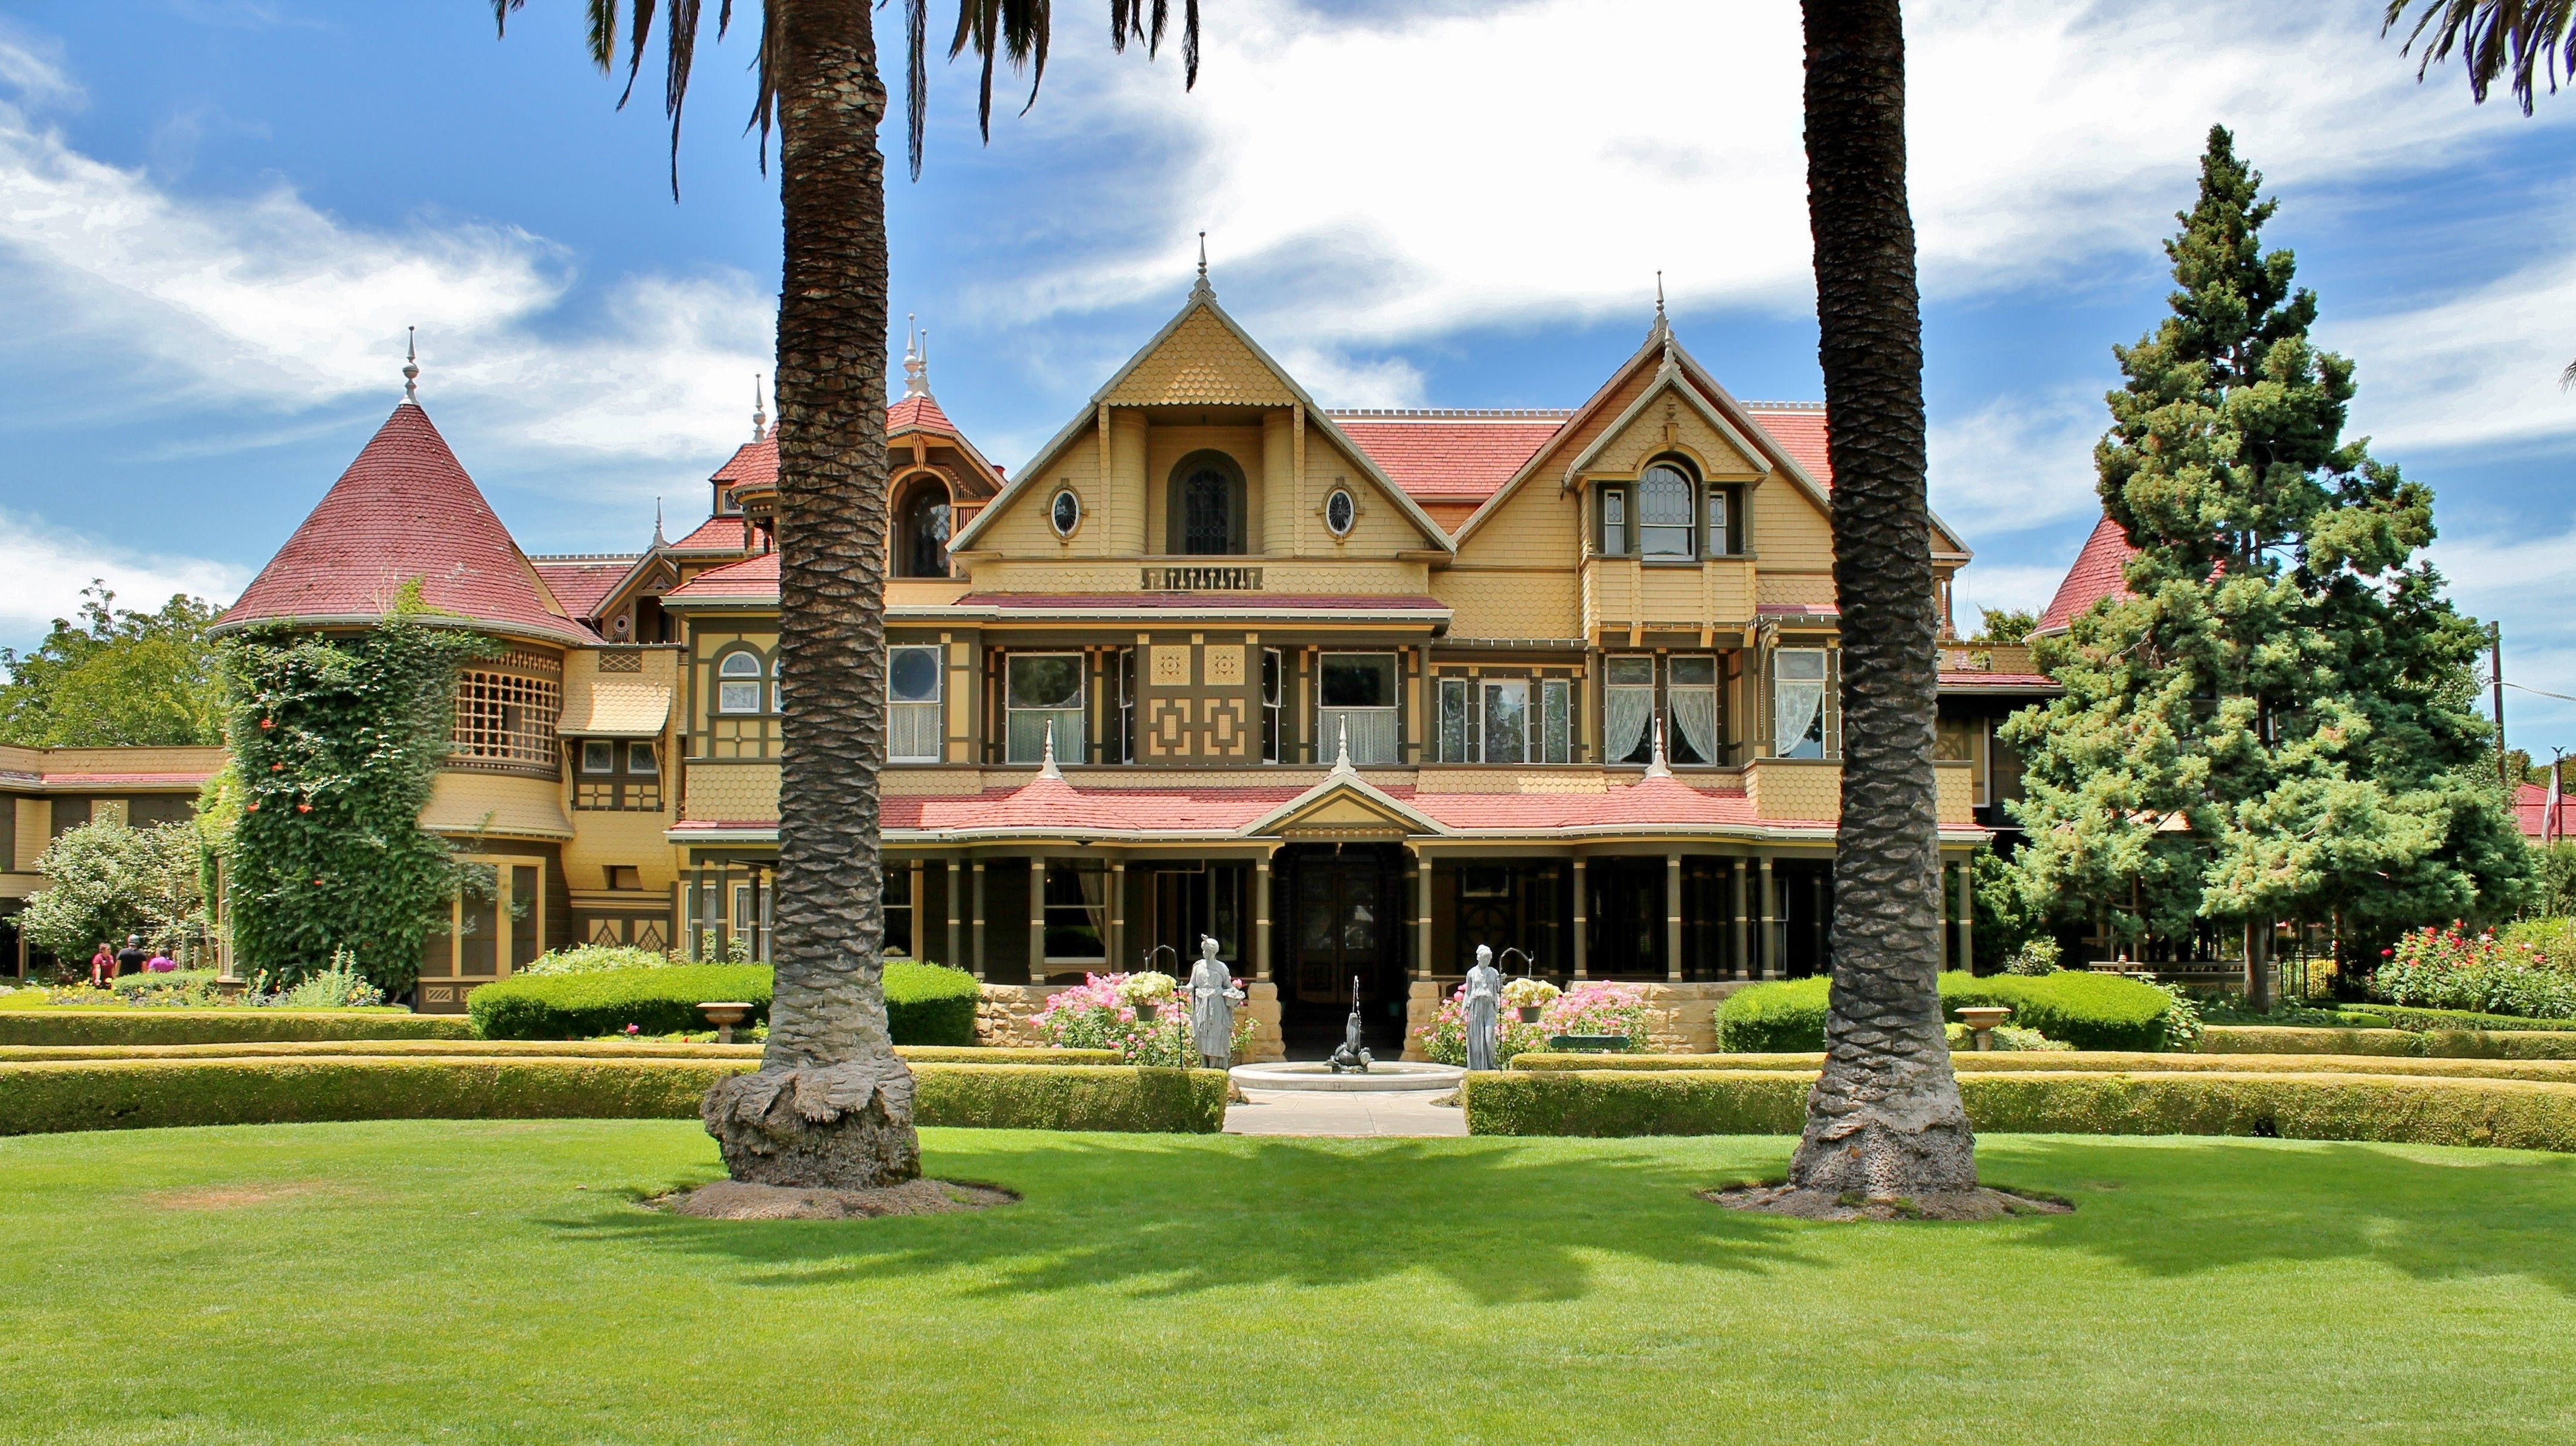 You Can Virtually Tour The Winchester Mystery House For Free While It's Closed Due To COVID-19